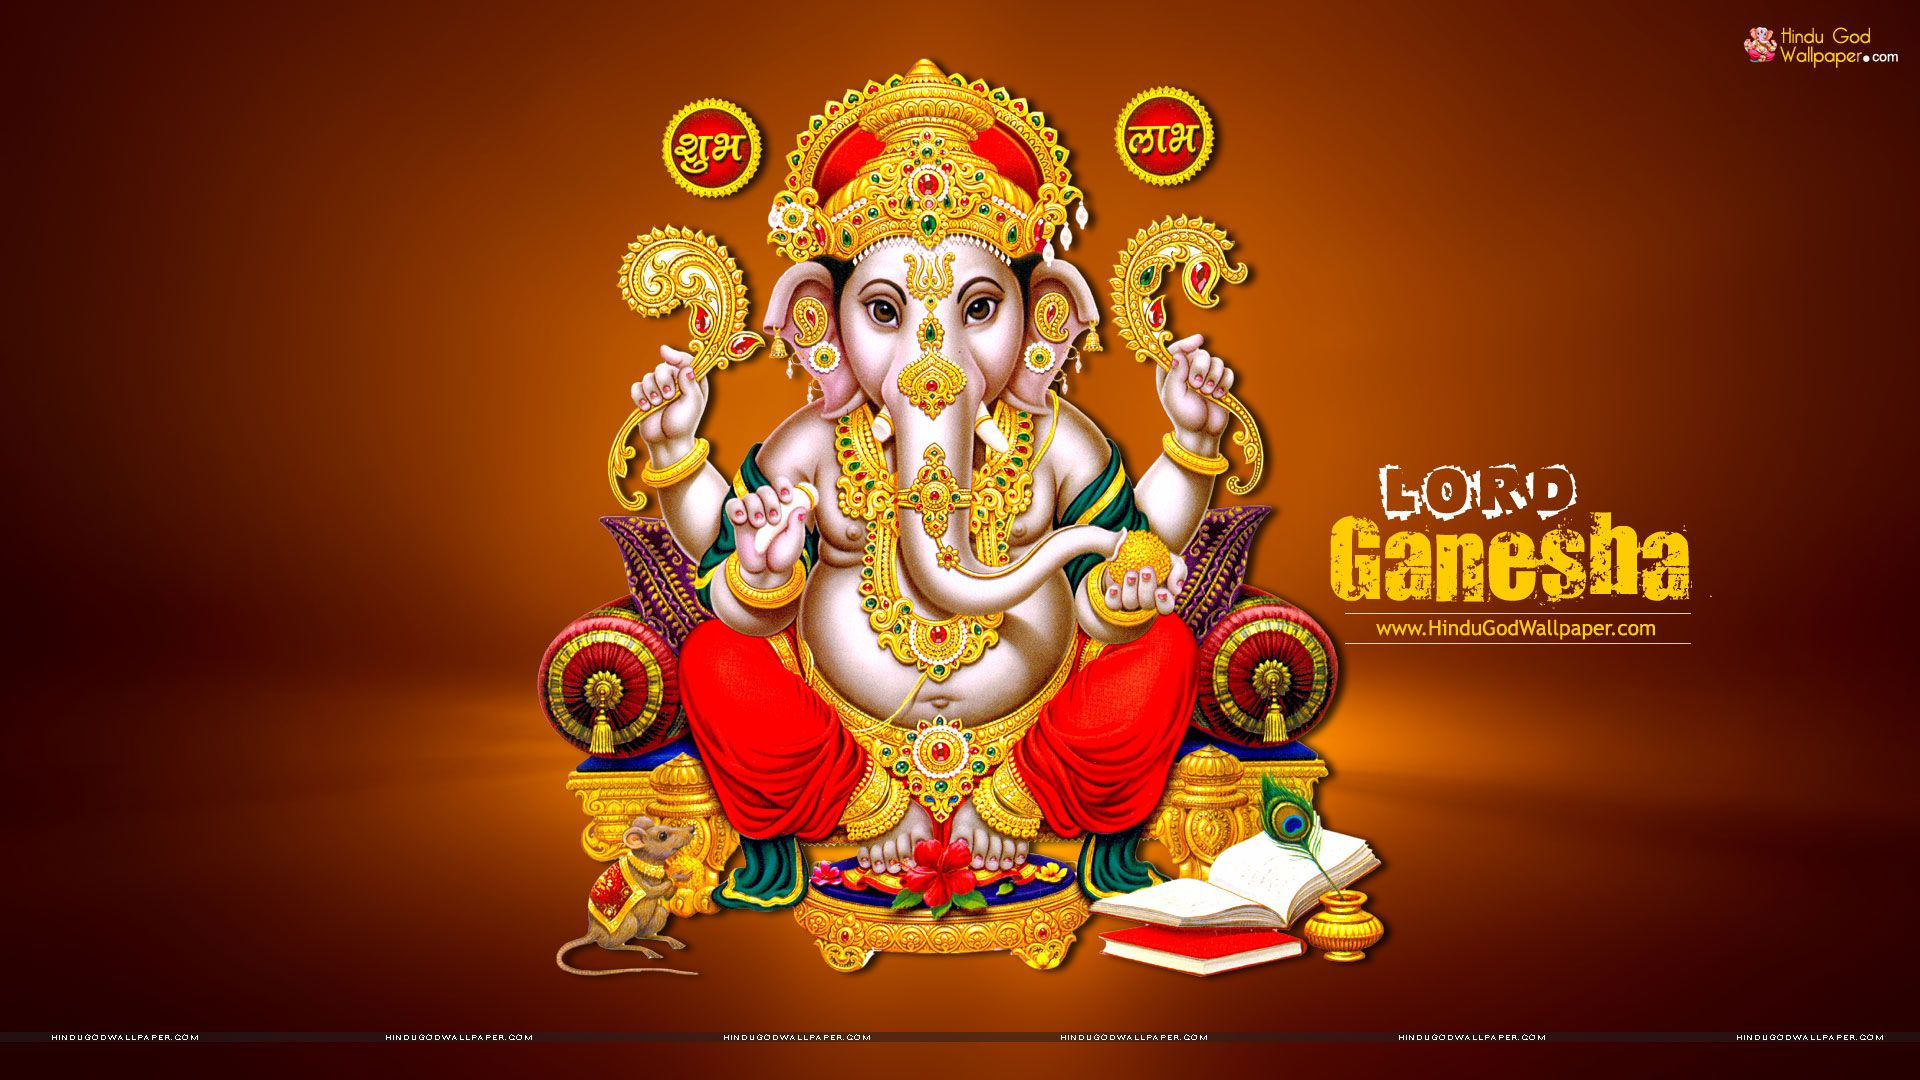 Lord Ganesha Pictures Hd: Lord Ganesha Wallpaper 1920x1080